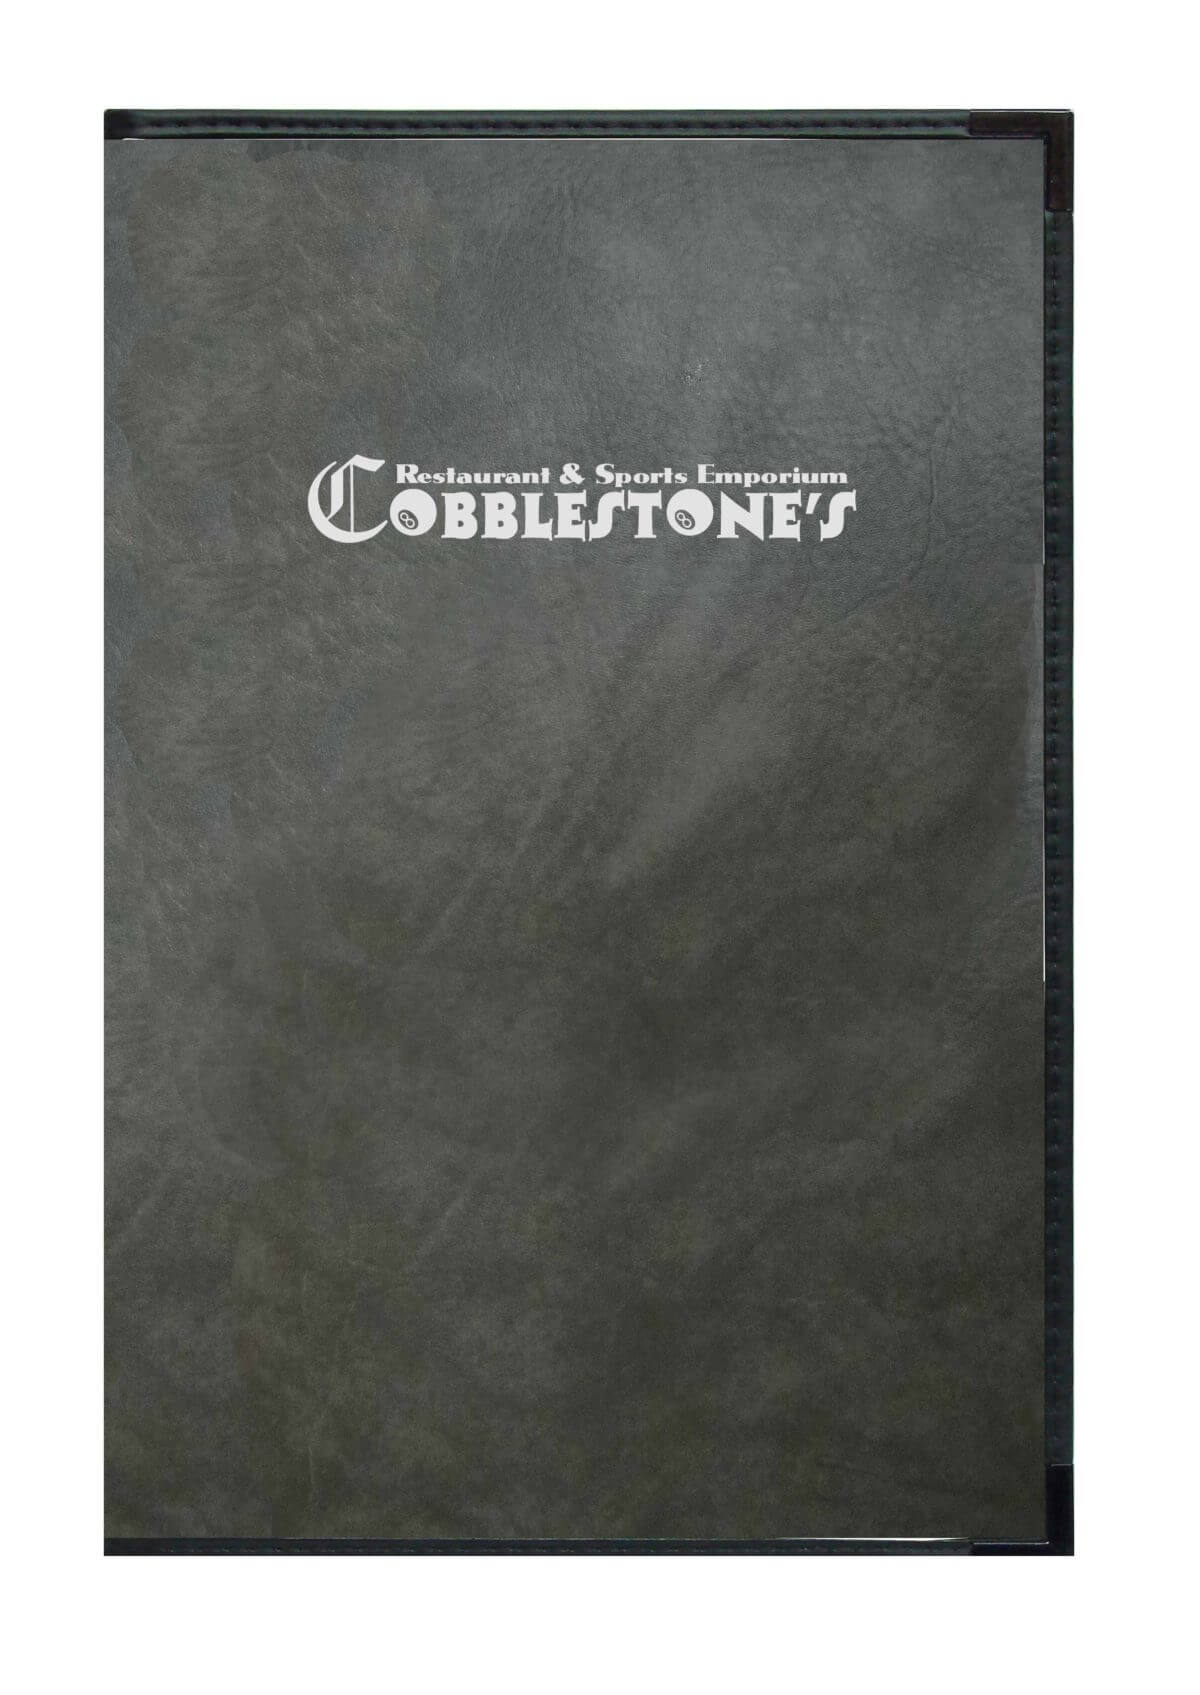 Royal-in-Charcoal-Faux-Leather-with-Silver-Foil-Logo